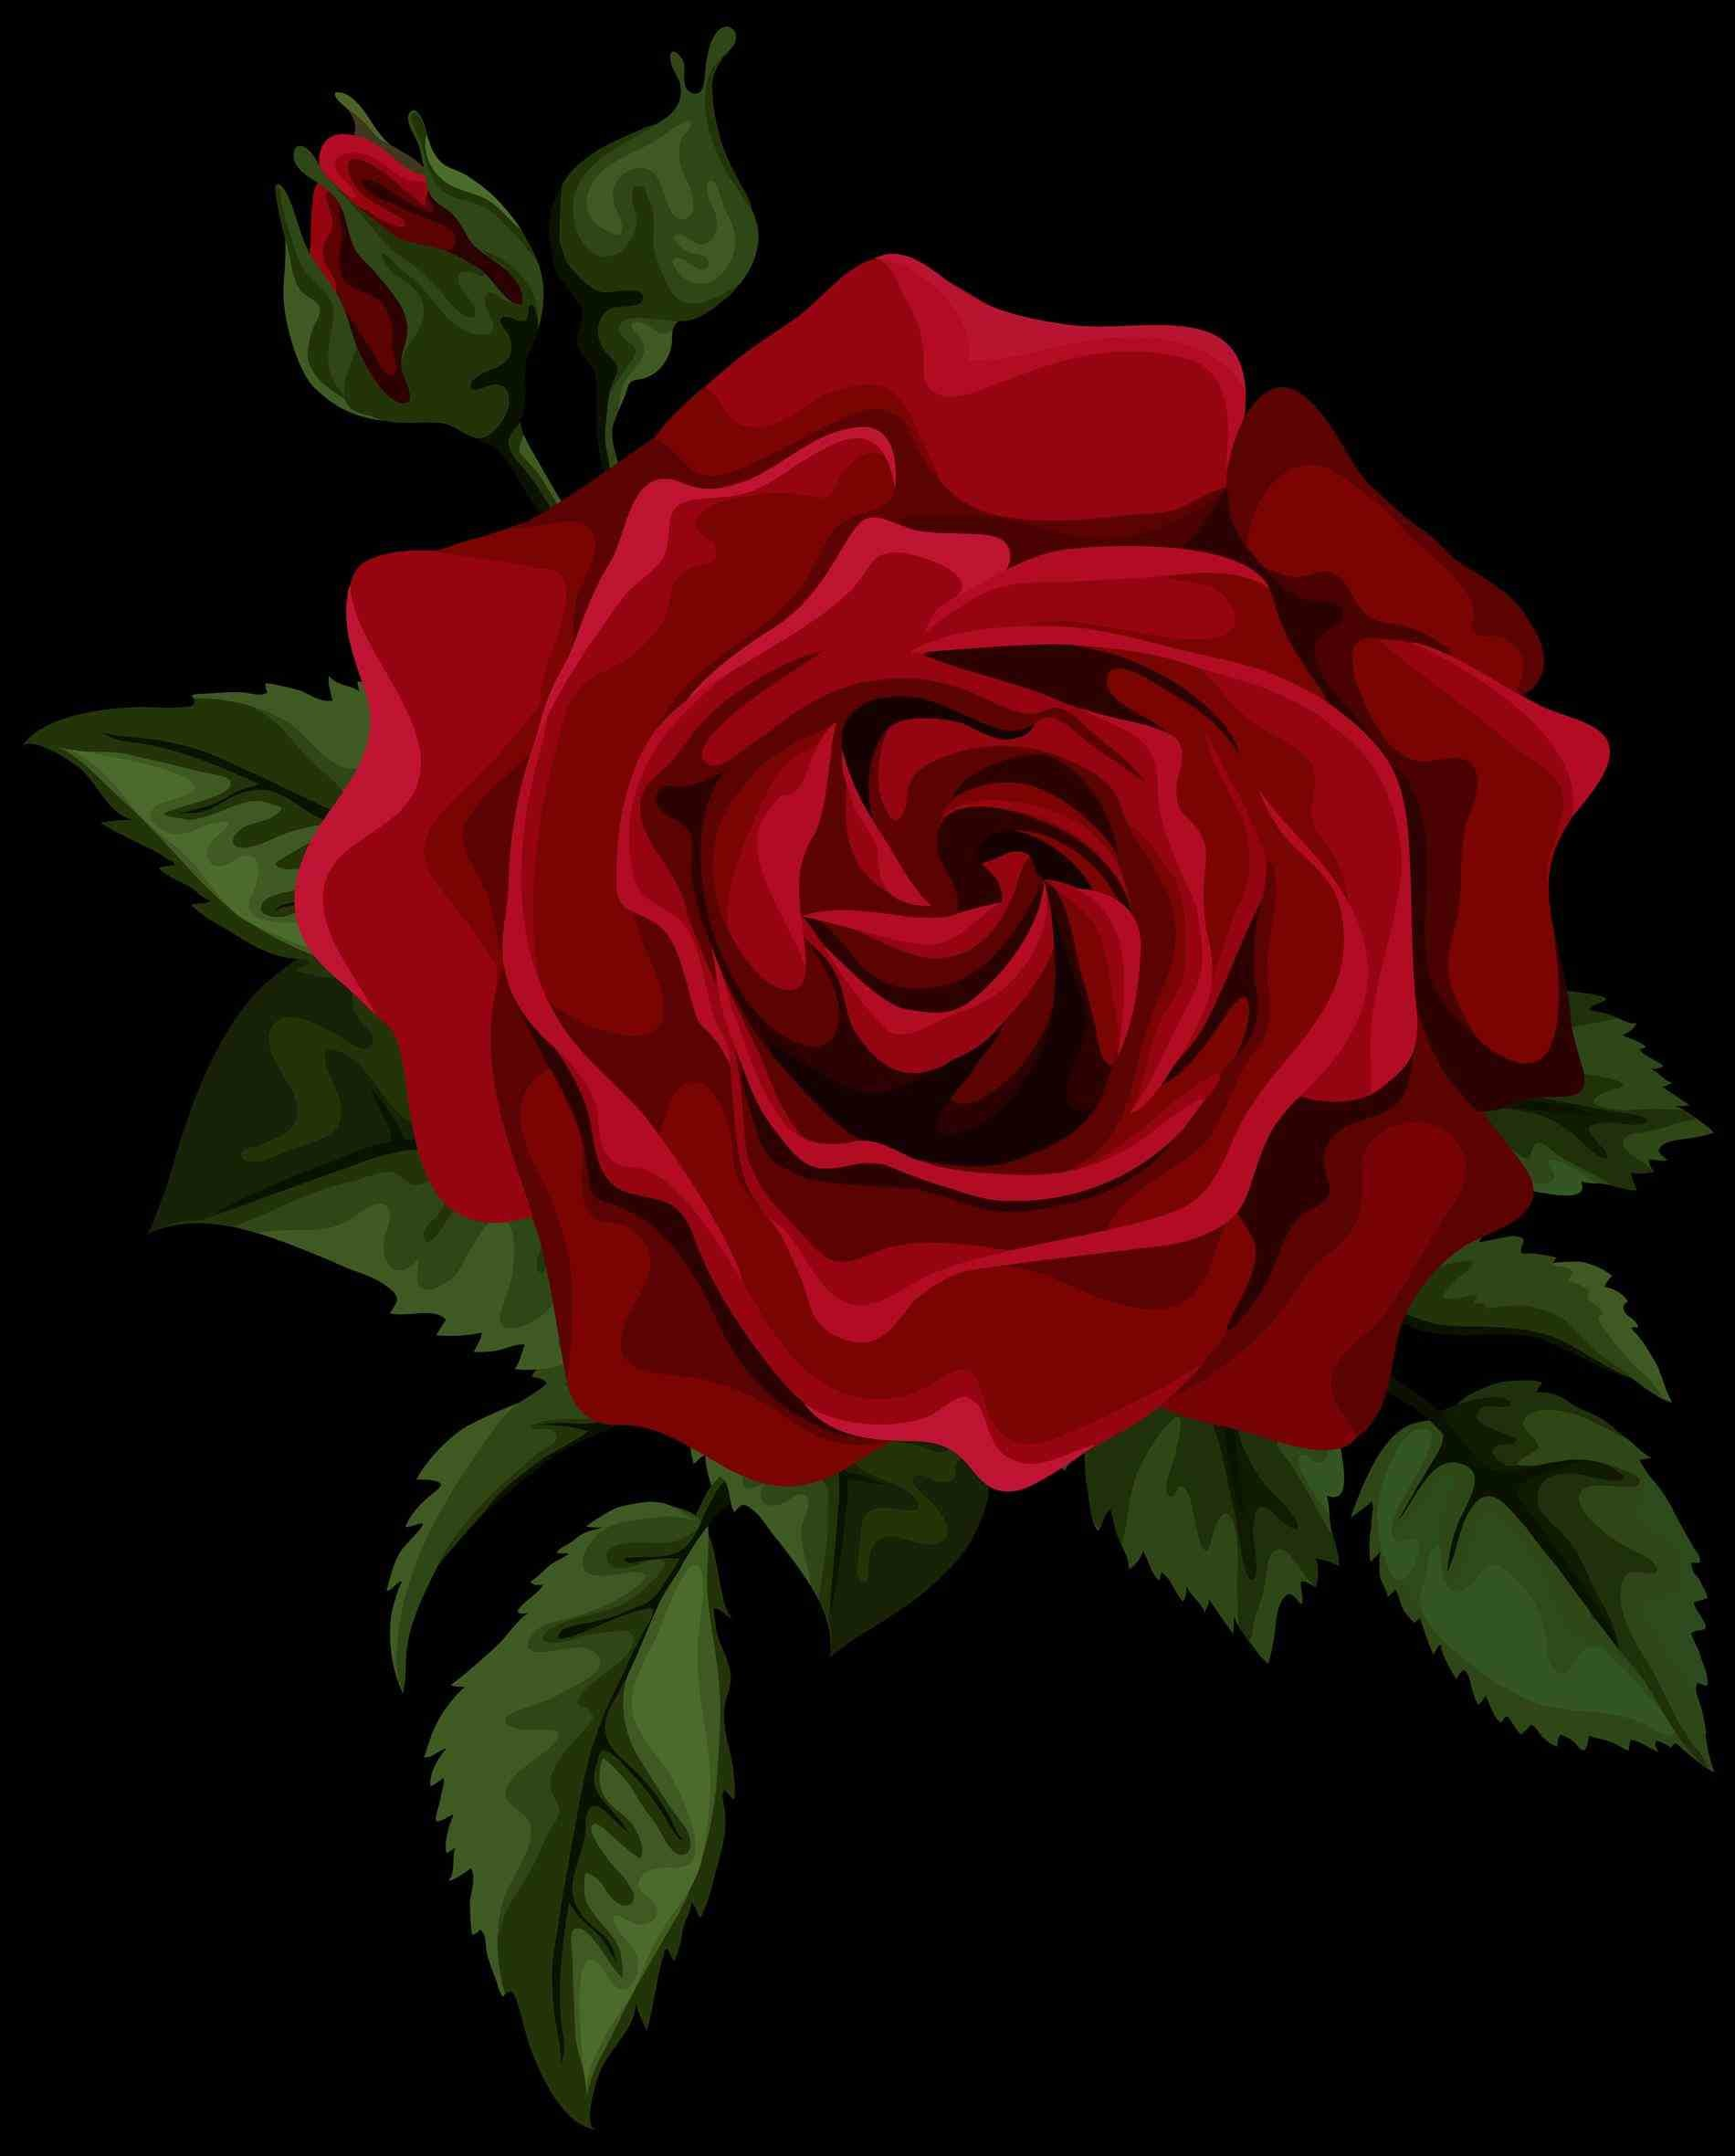 1900x2361 Tablet awesome earth transparent red rose tumblr rose wallpapers desktop  phone tablet awesome single red png .